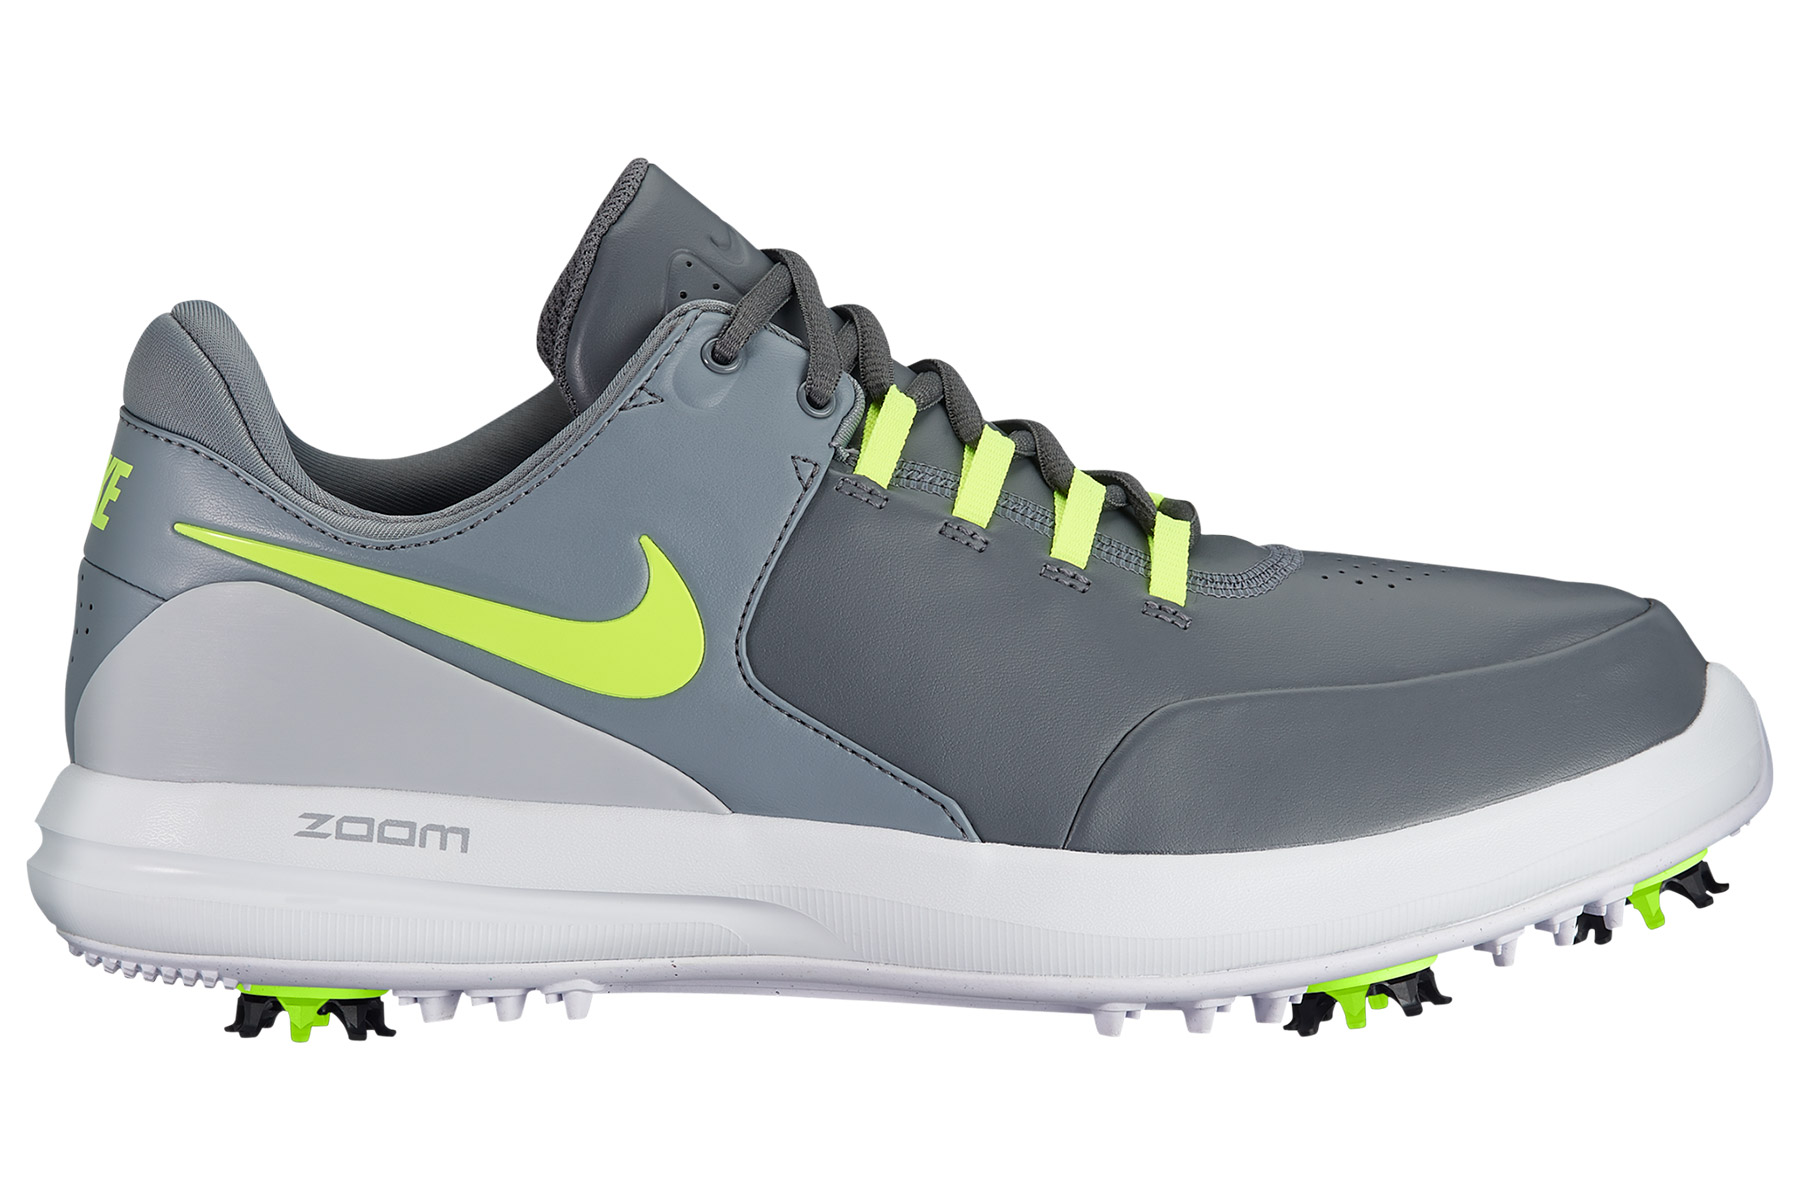 Nike Golf Air Zoom Accurate Shoes